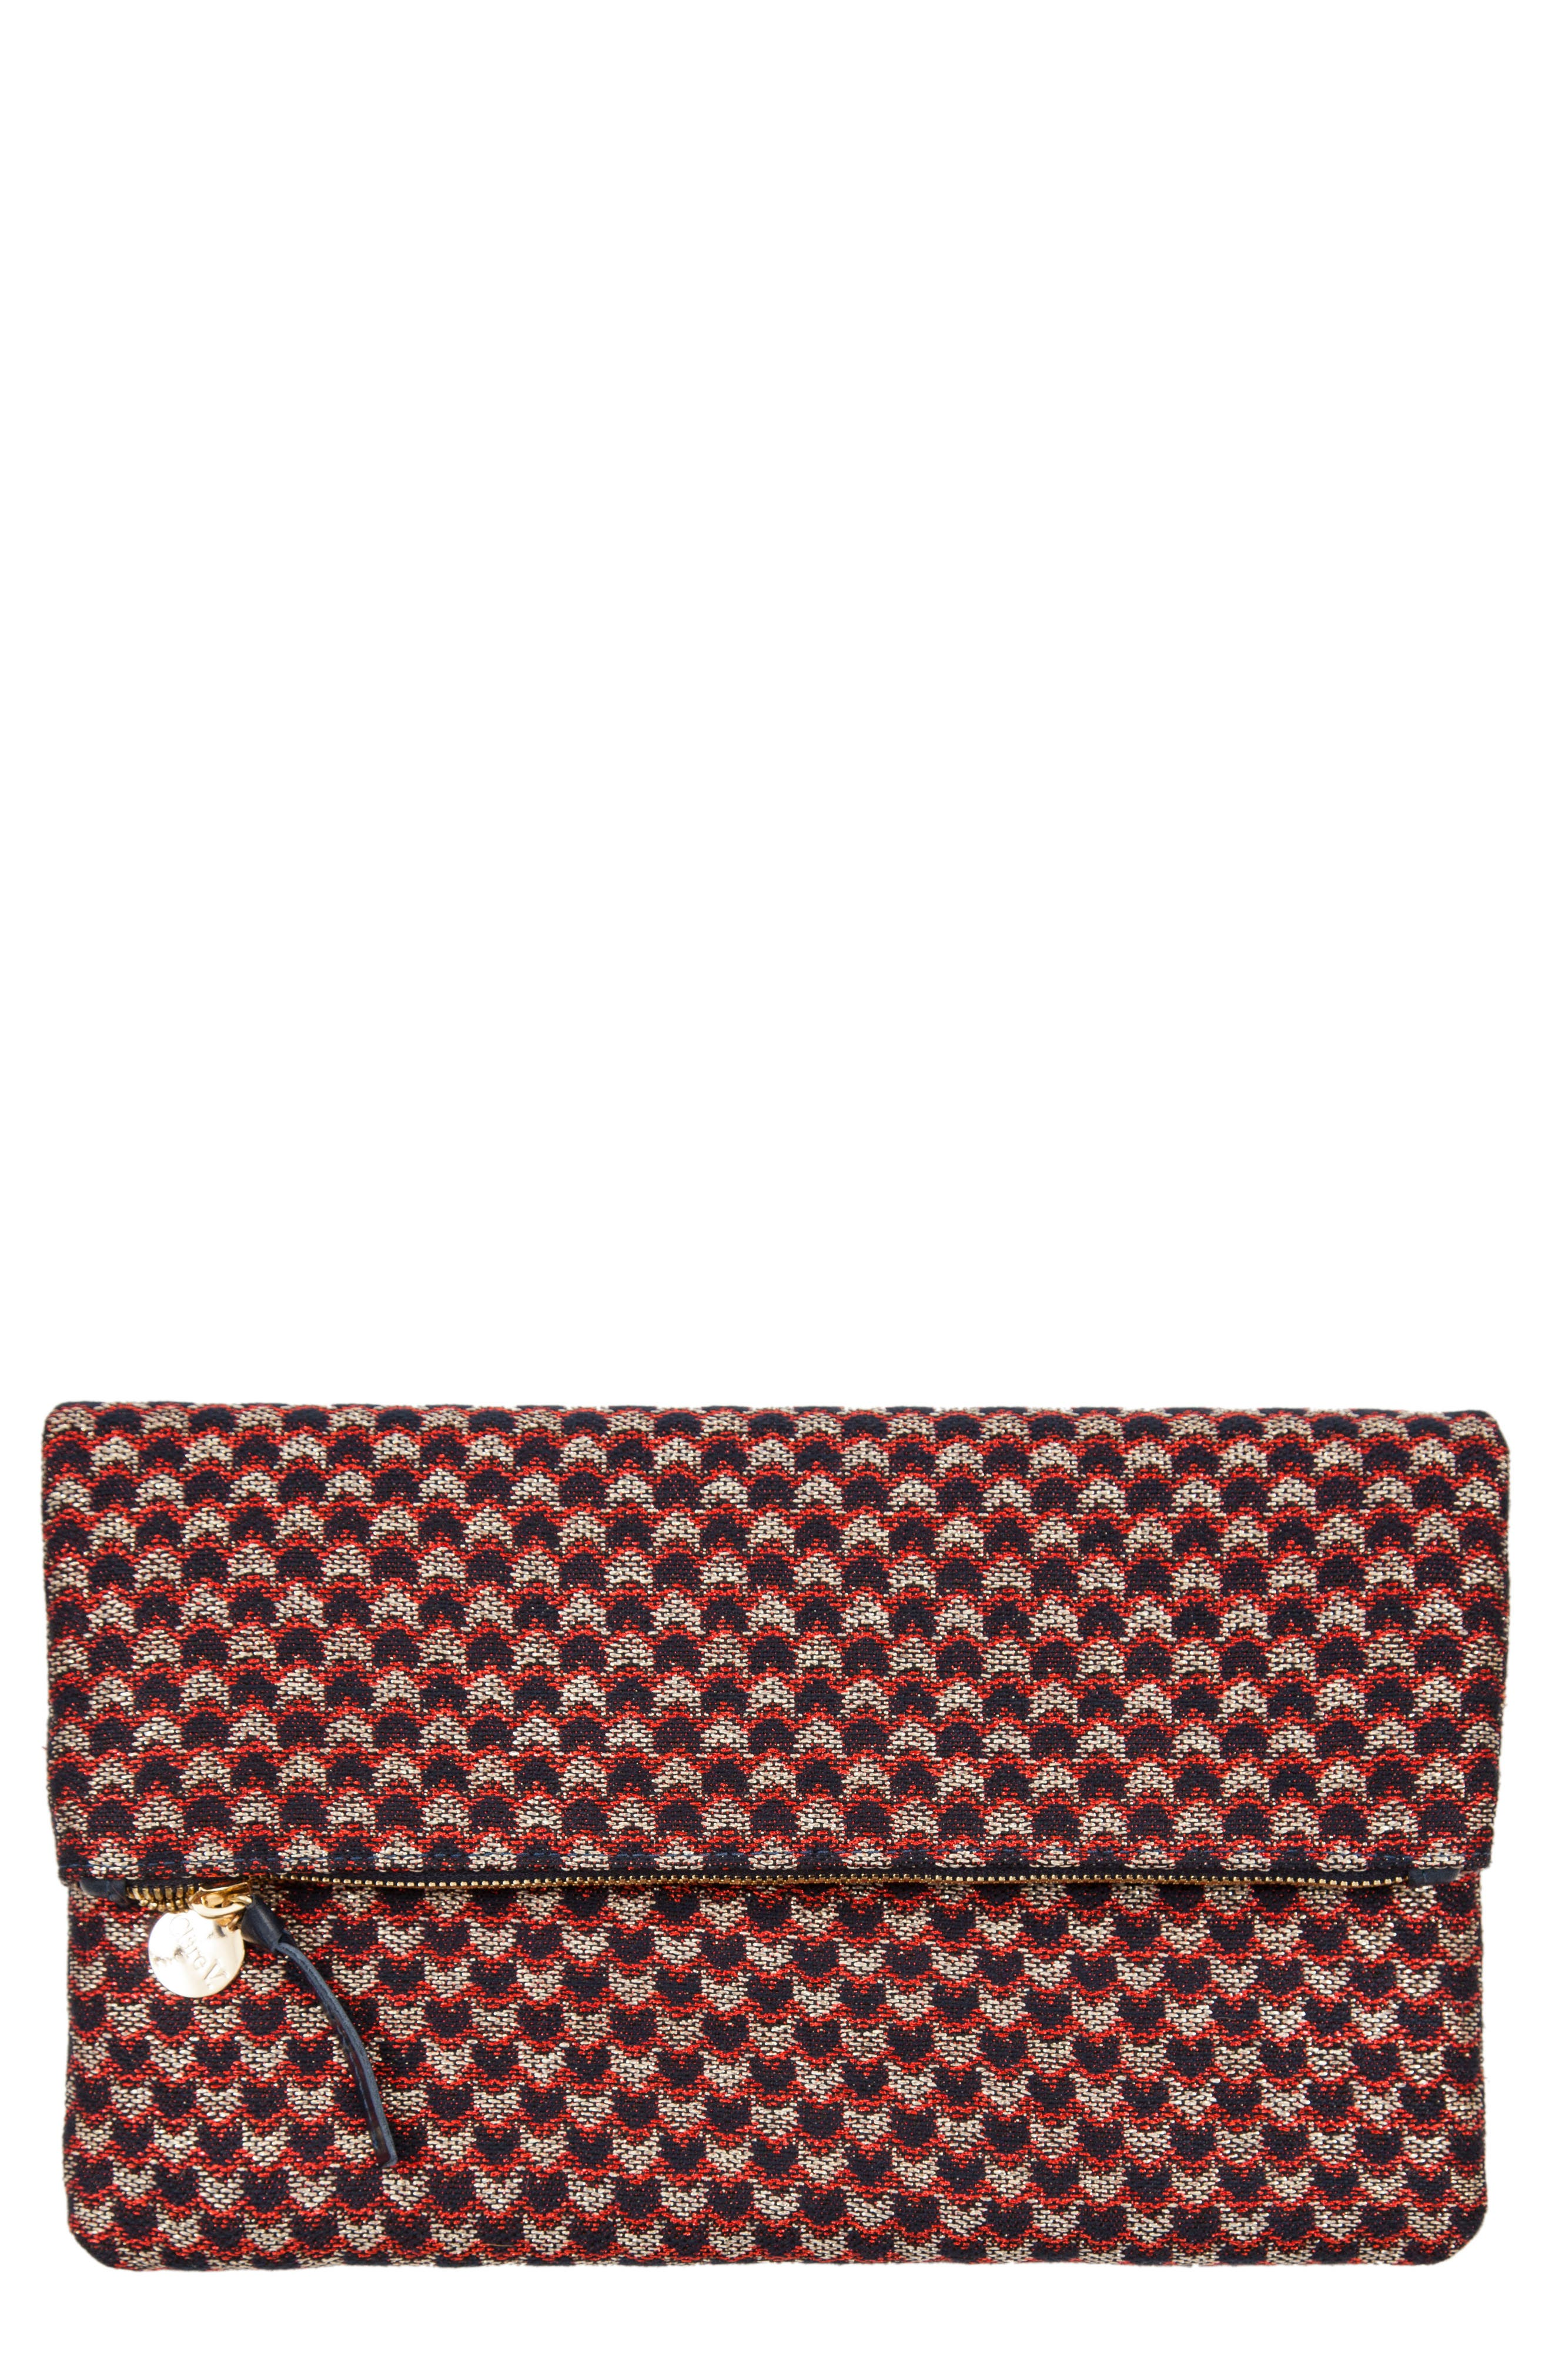 Marquis Foldover Clutch,                             Main thumbnail 1, color,                             Marquis